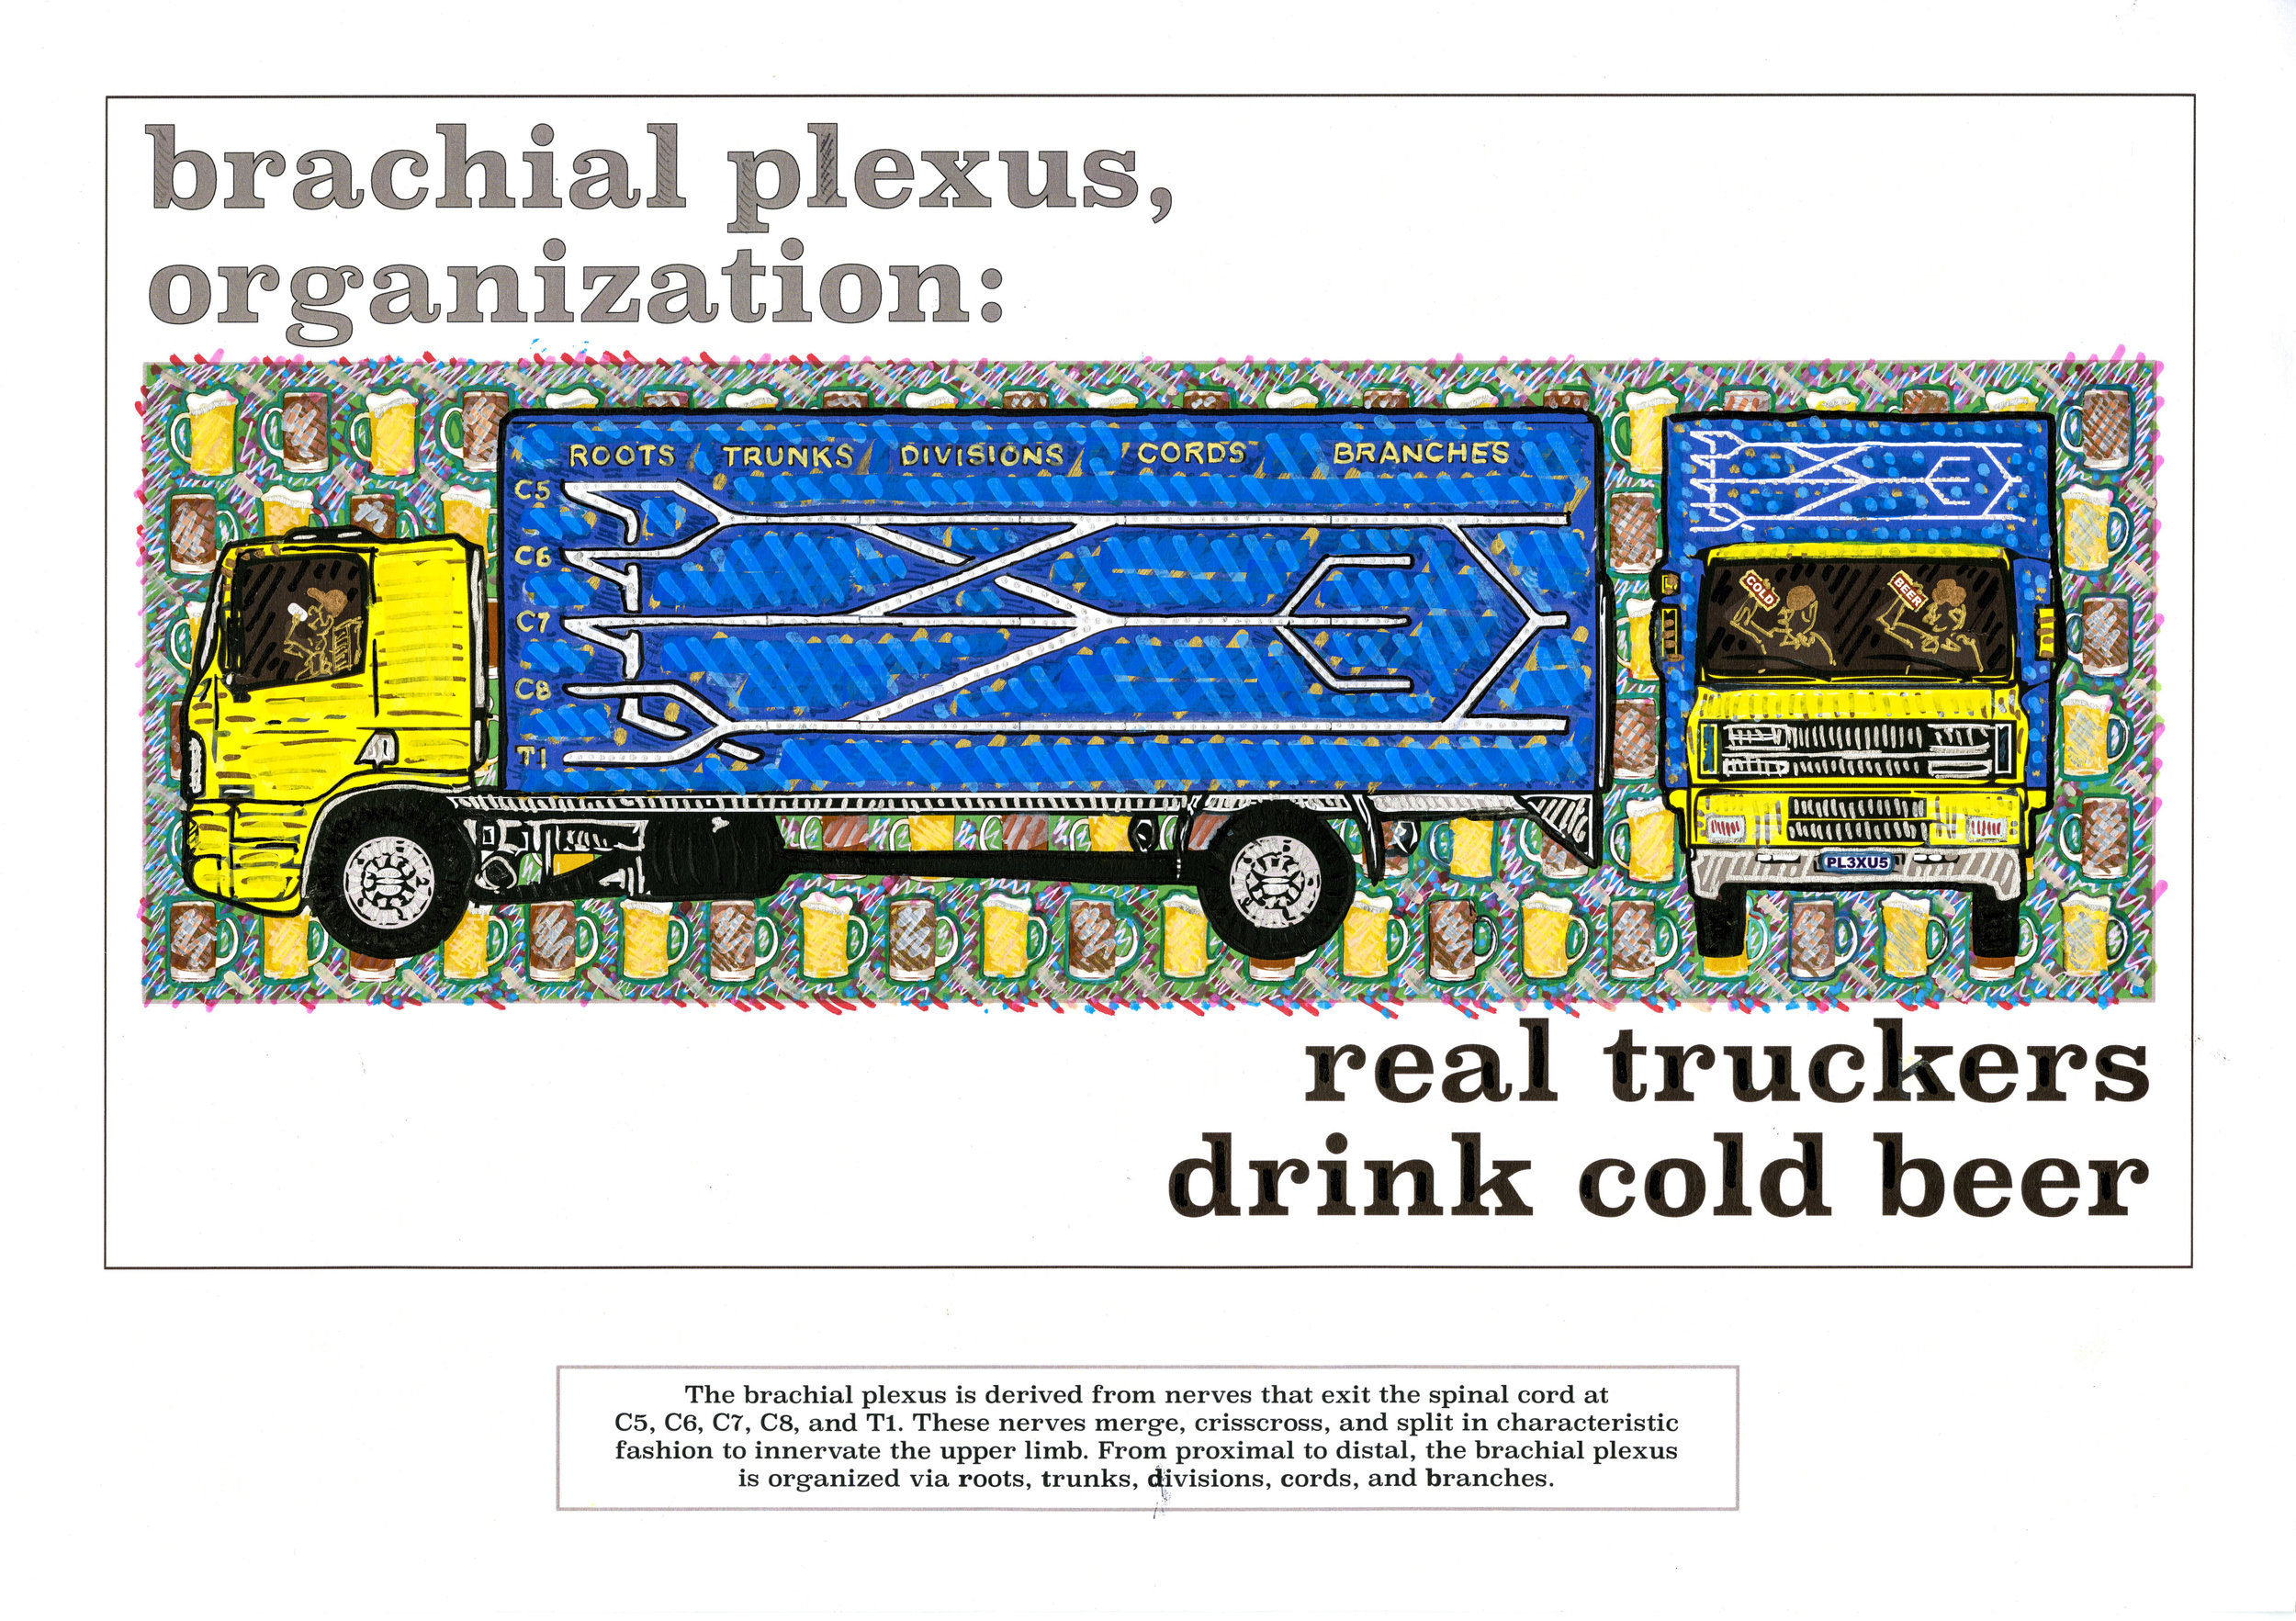 real truckers drink cold beer.jpg